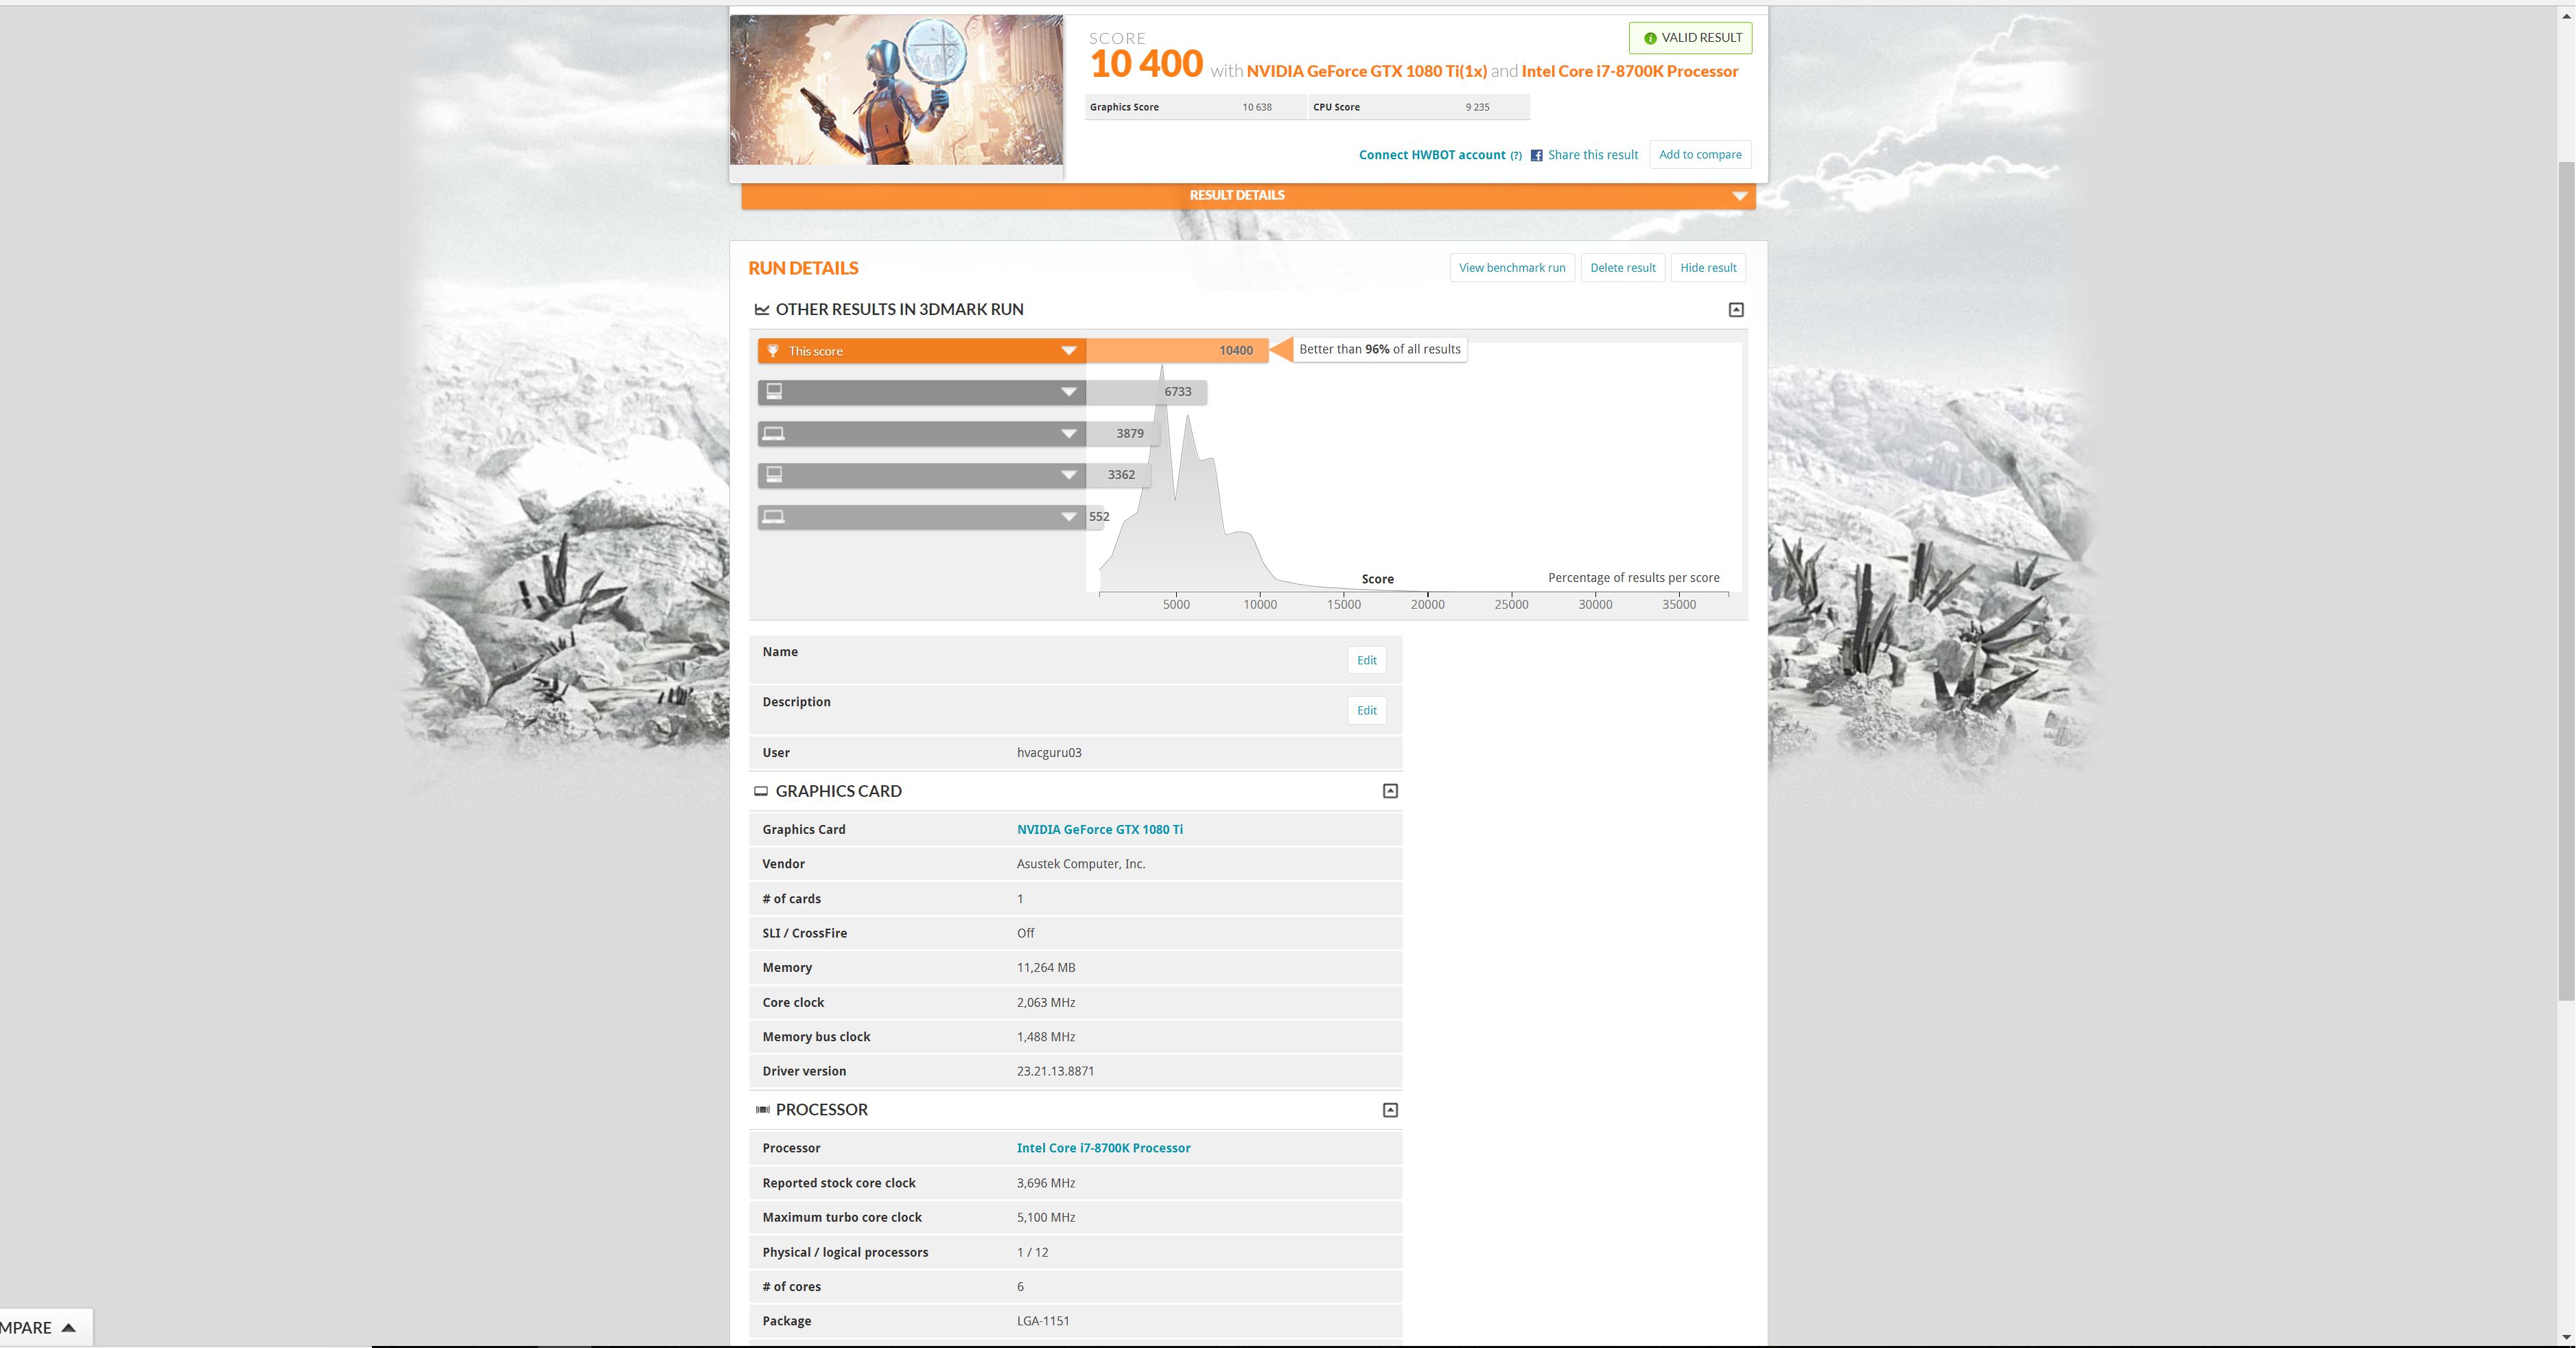 i7 8700k overclock results and settings - Page 203